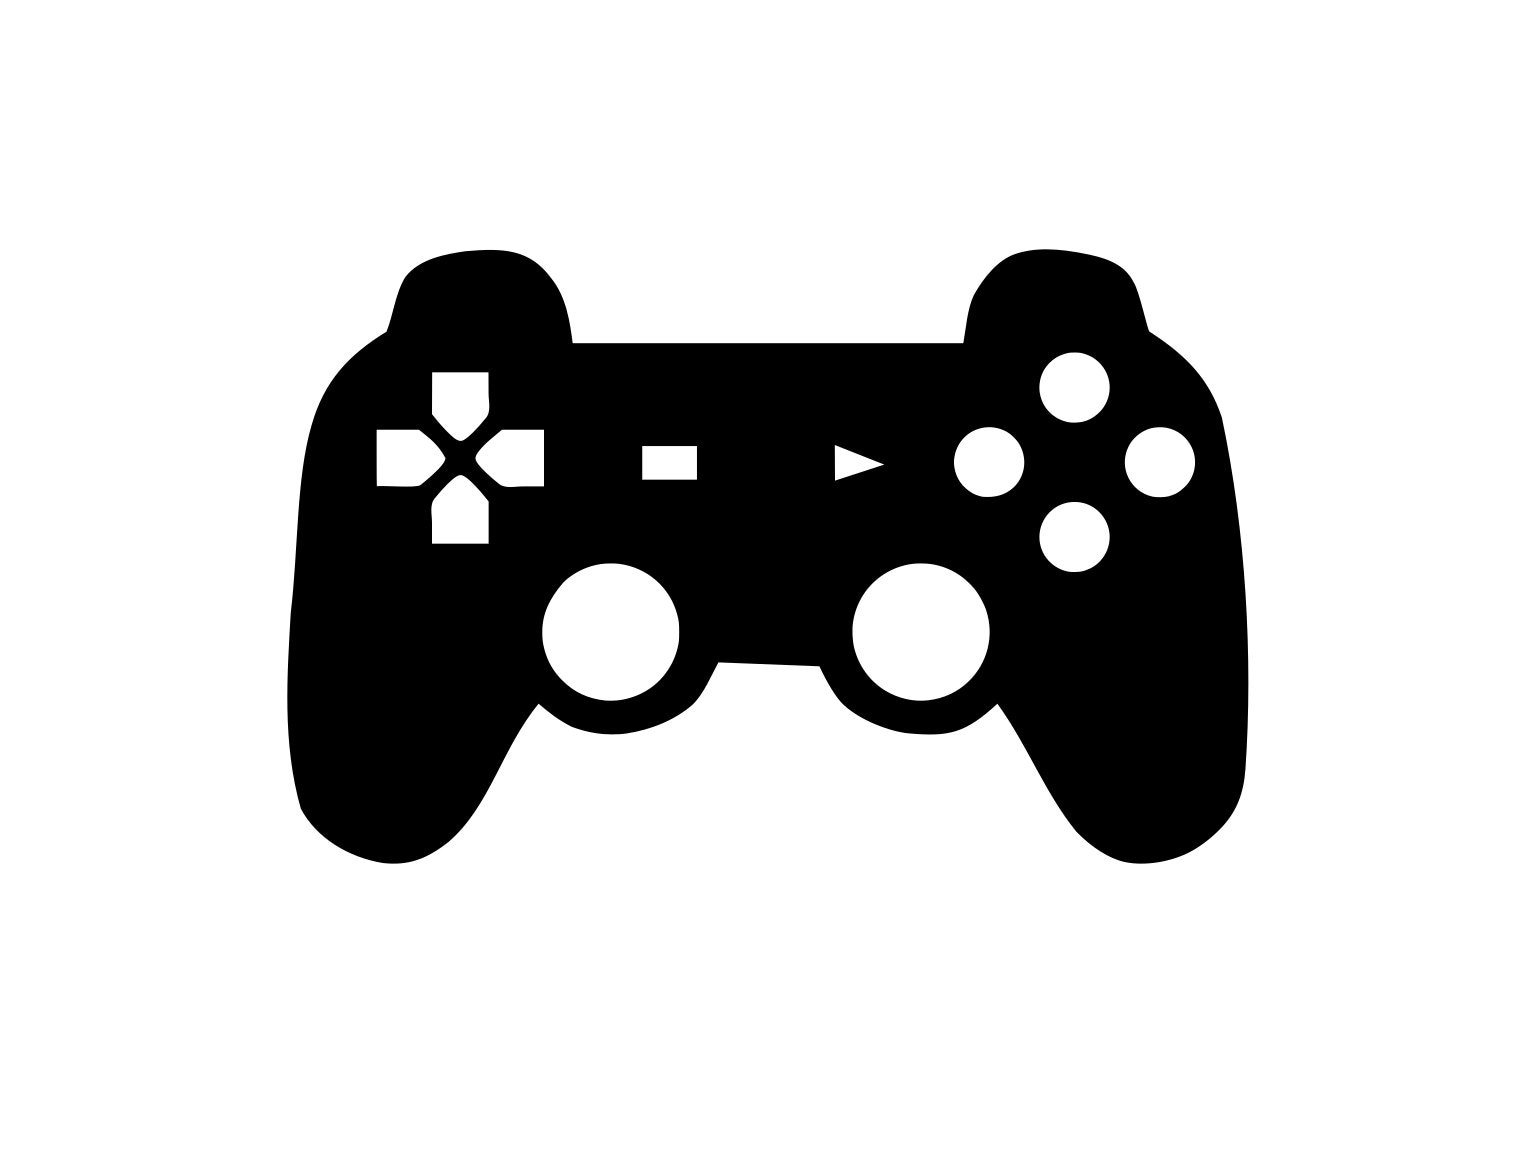 Game Controller Svg Gamer Svg Controller Svg Silhouette Dxf Files Controller Gamer Video Game Controller Video Game Svg Cut File Svg